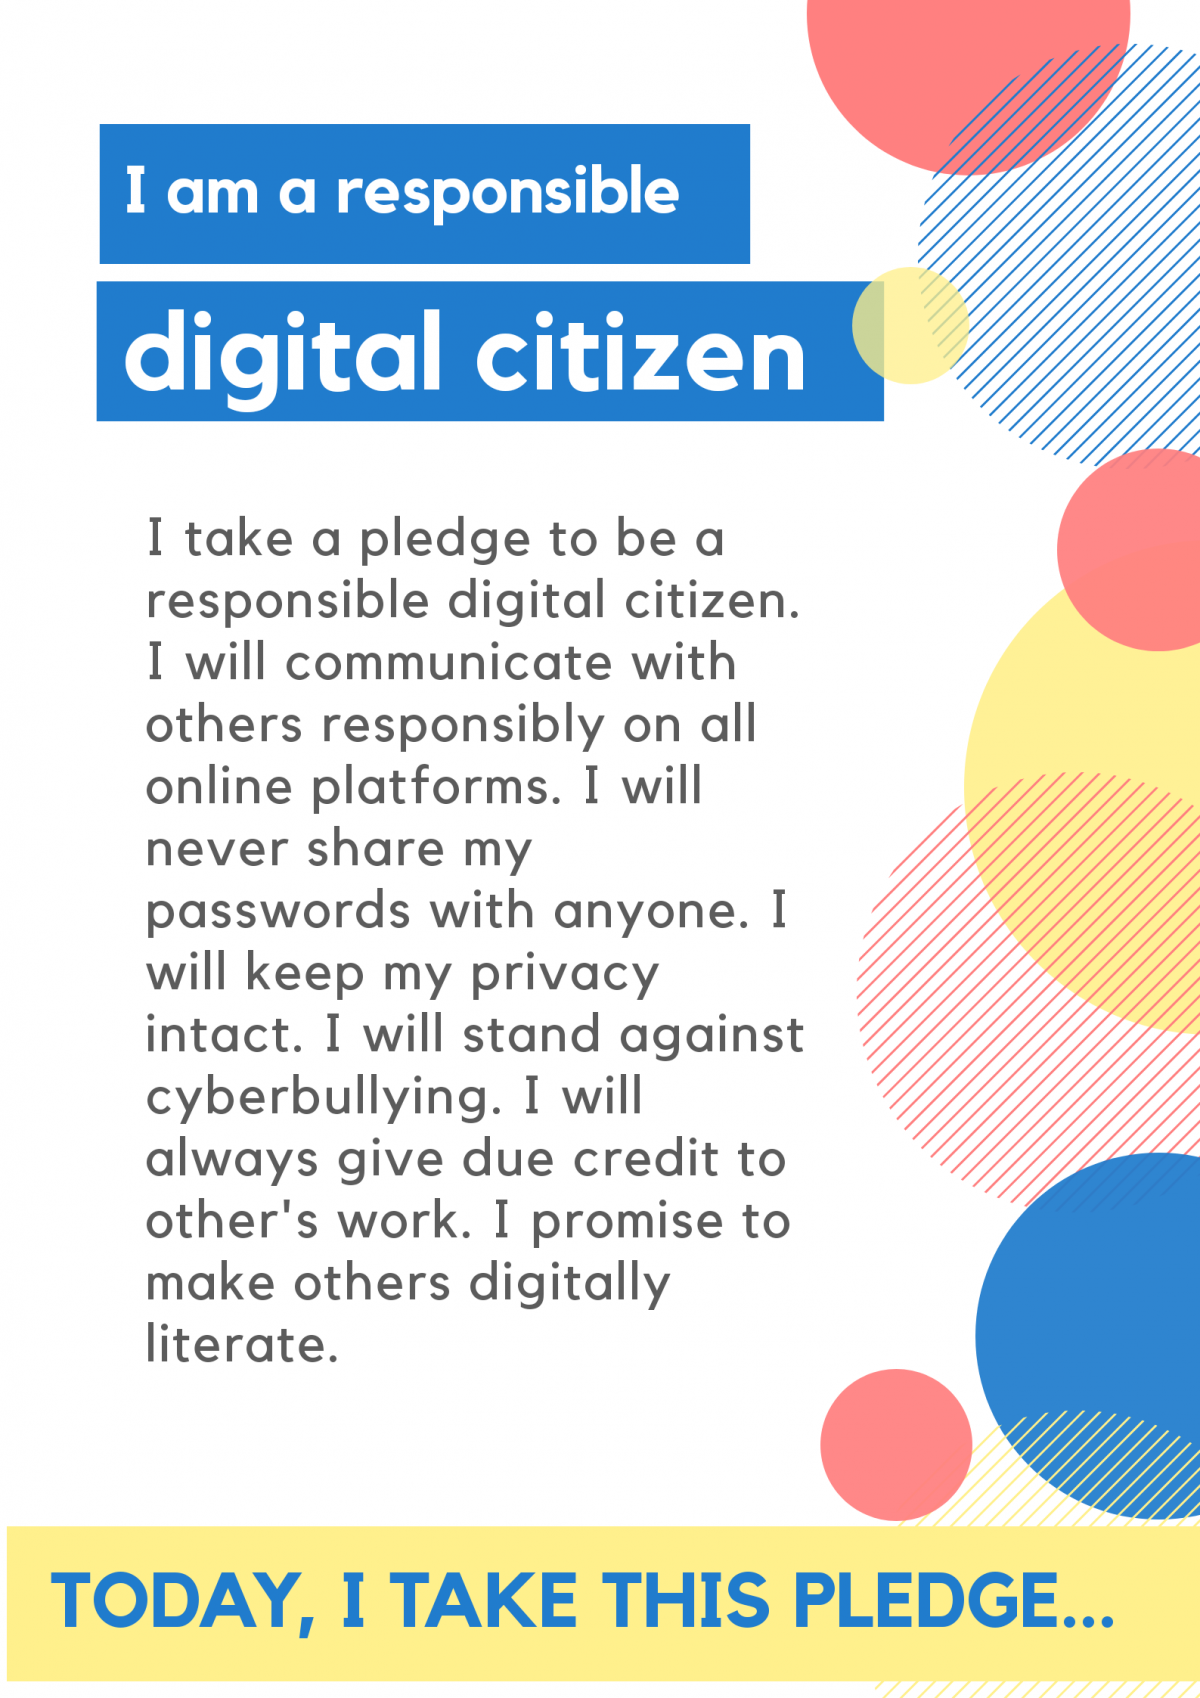 Pledge for digital citizenship